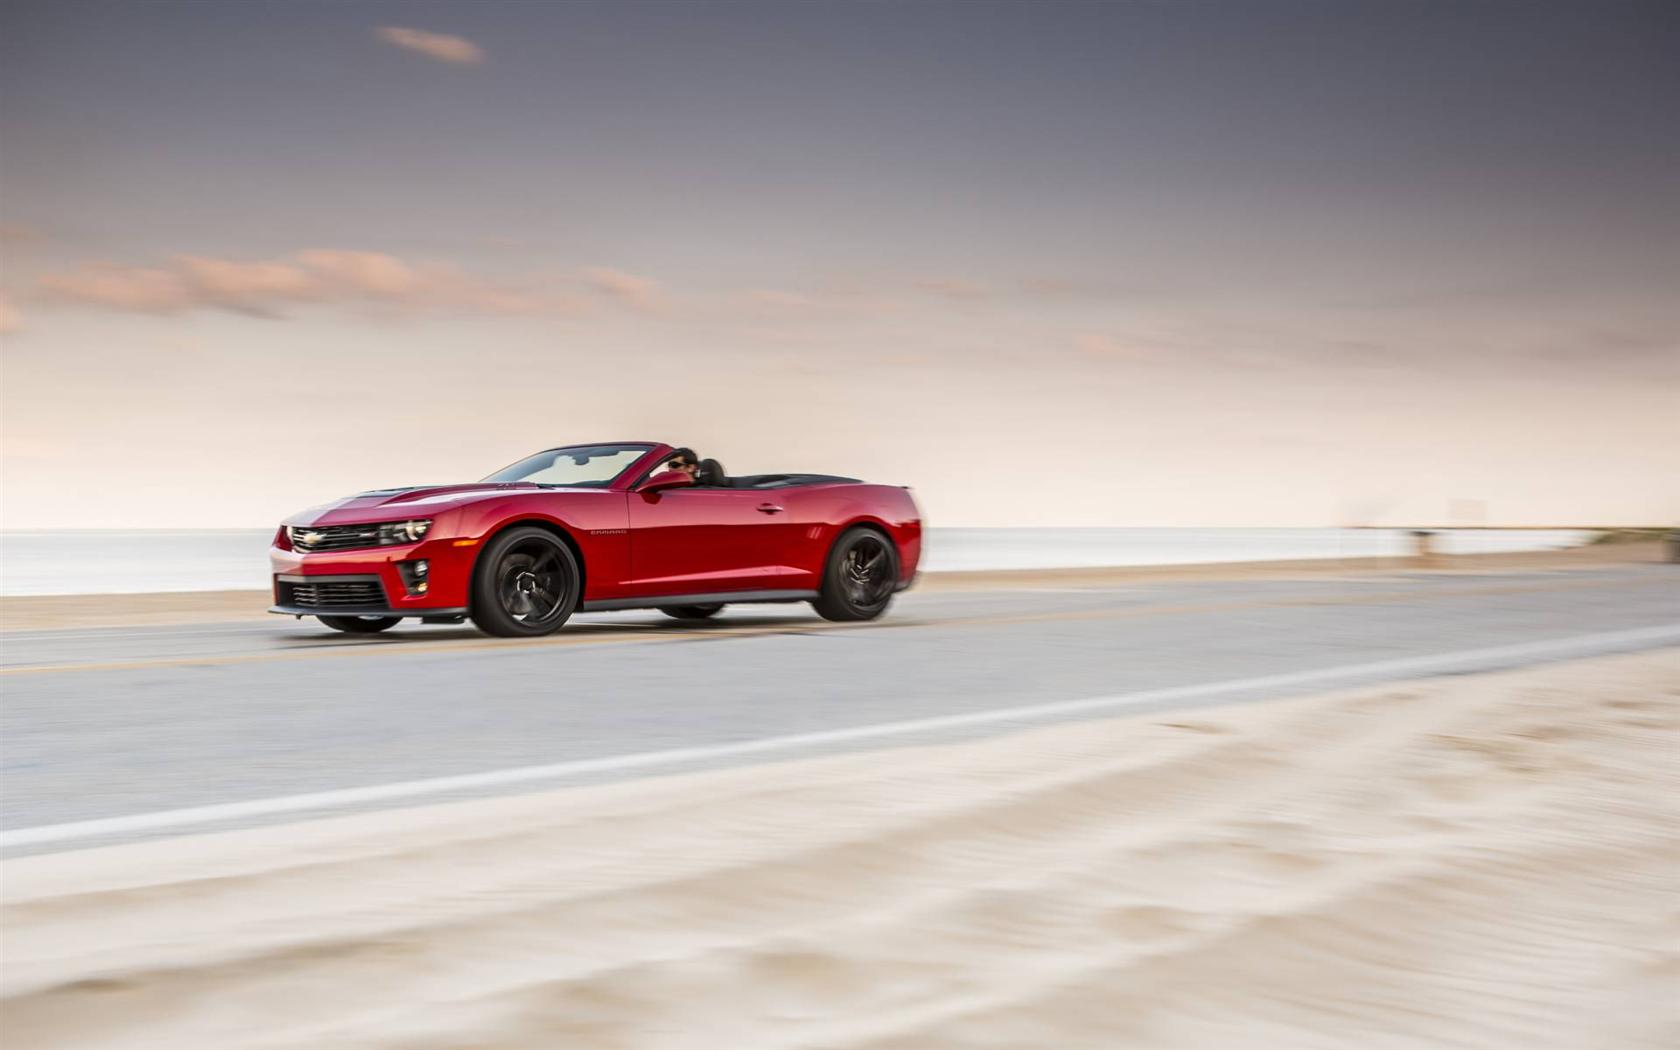 2013 Chevrolet Camaro Zl1 News Pictures Specifications